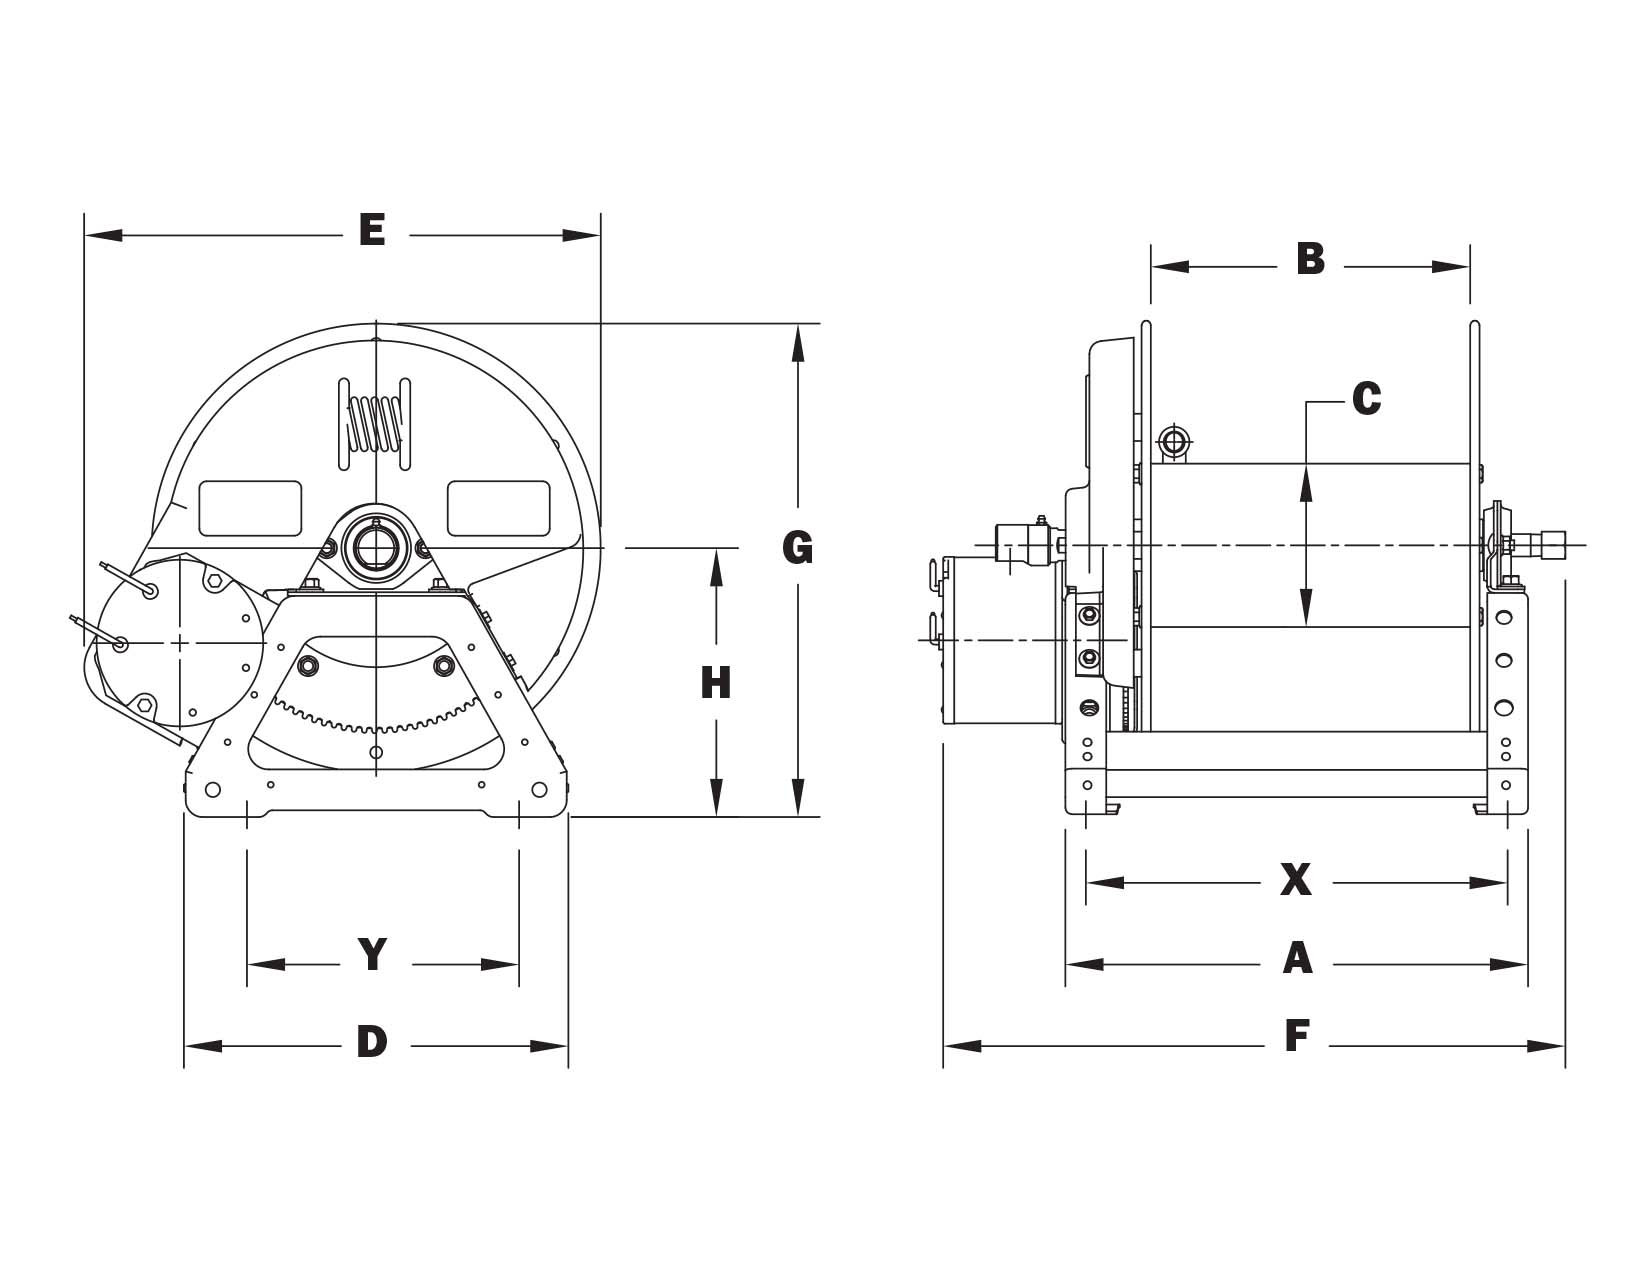 1500 Schematic_1491494307 1500 series hannay reels official site hannay reel wiring diagram at panicattacktreatment.co